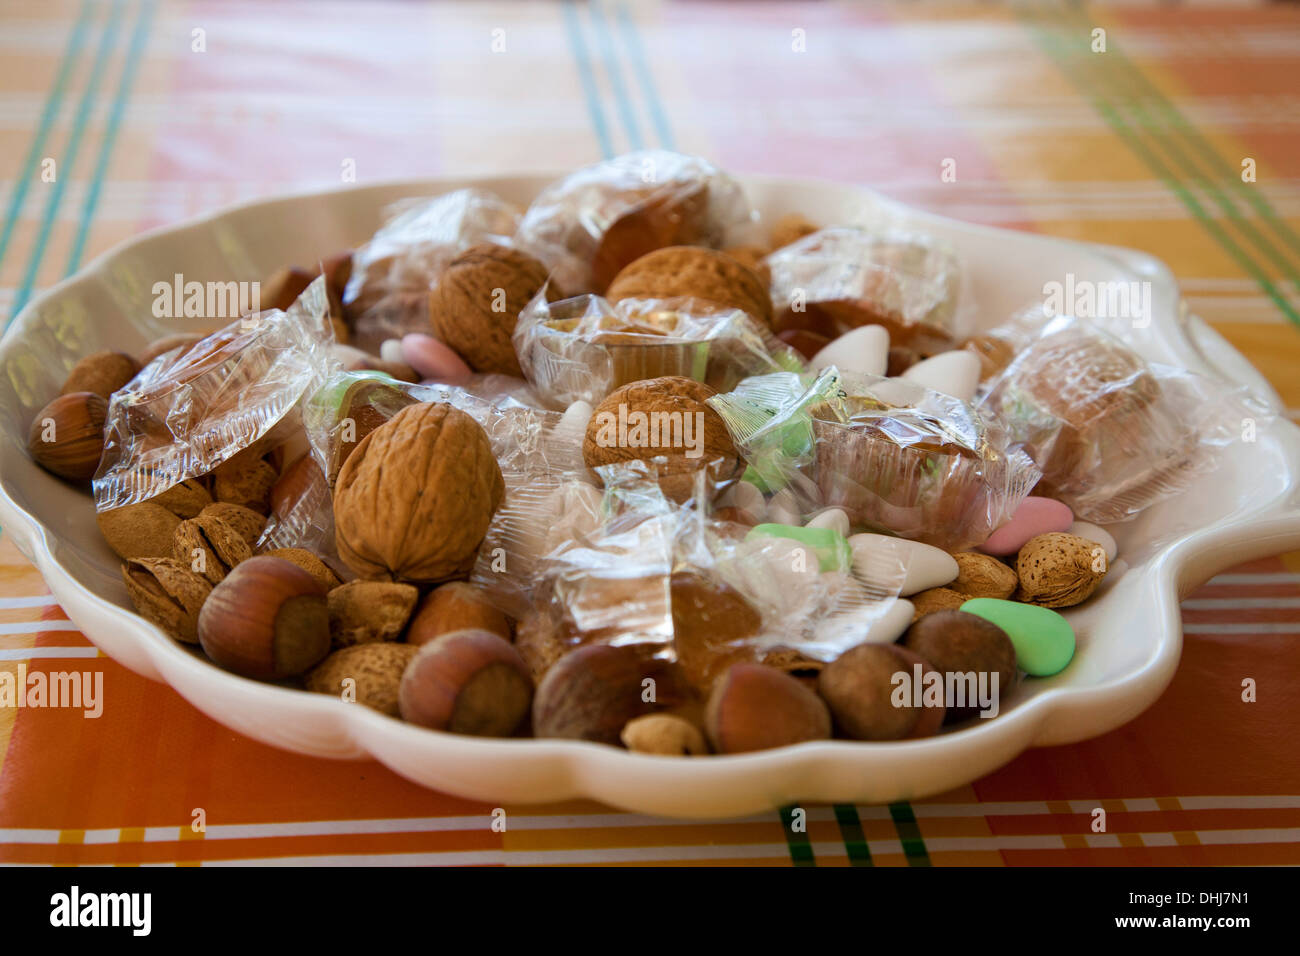 Dry nuts chocolate sugared sweets offer wedding gift snack guests offered disk plate ceremony church tokens appreciation invite - Stock Image